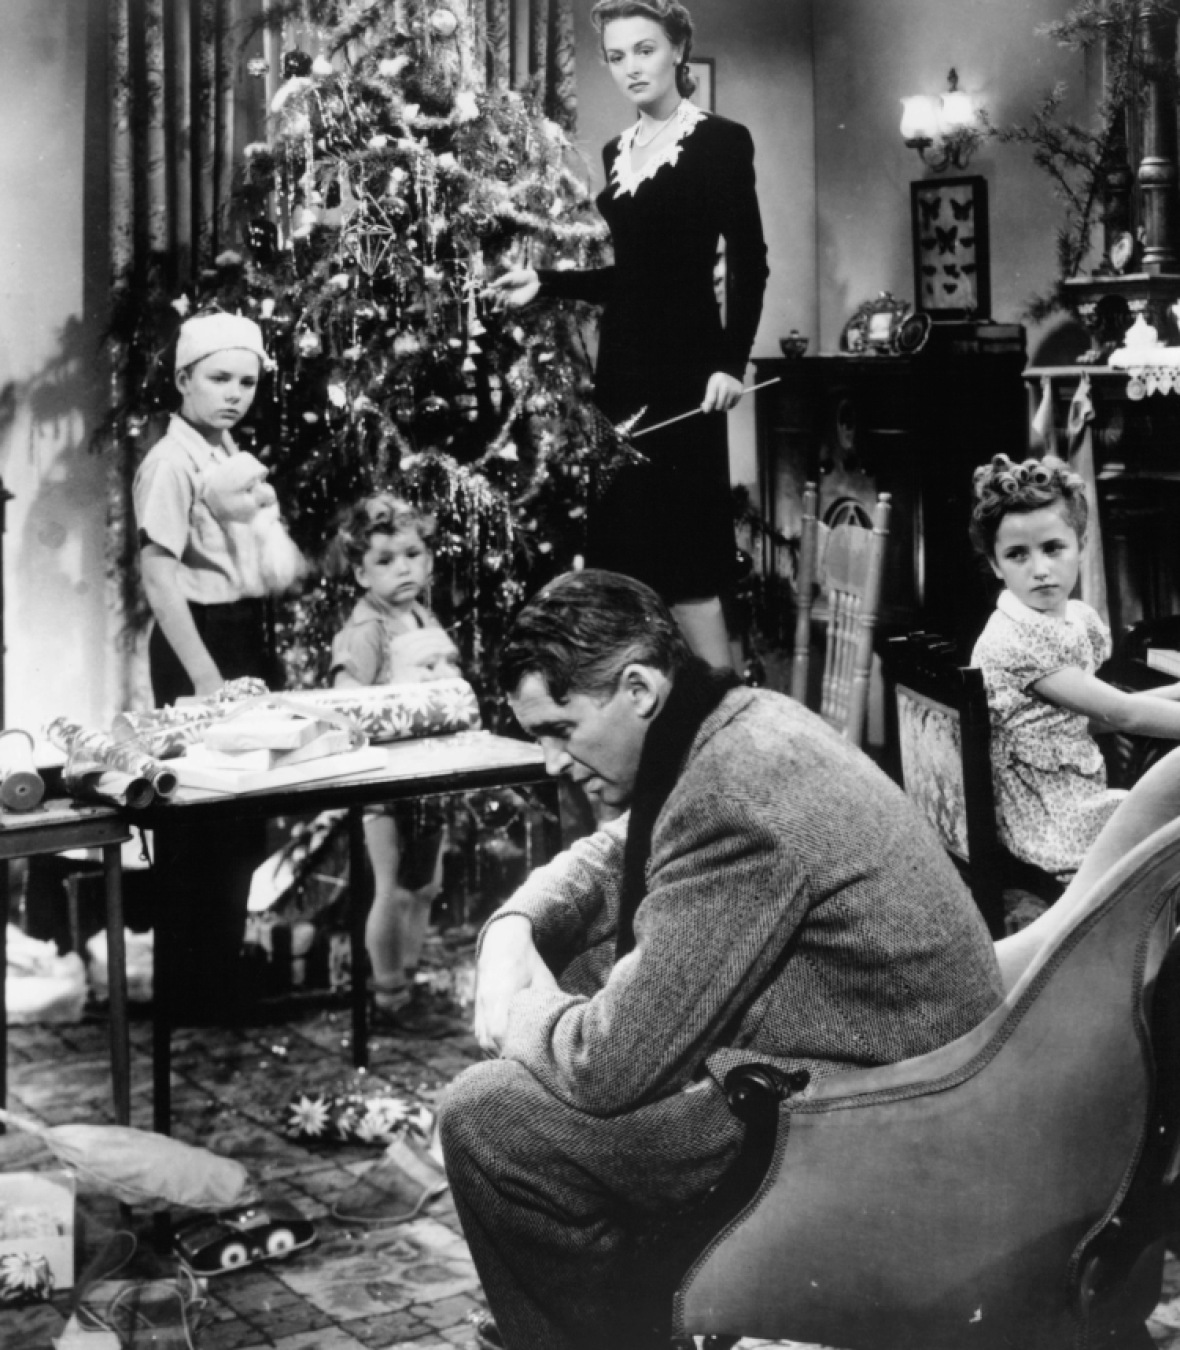 'it's a wonderful life' getty images